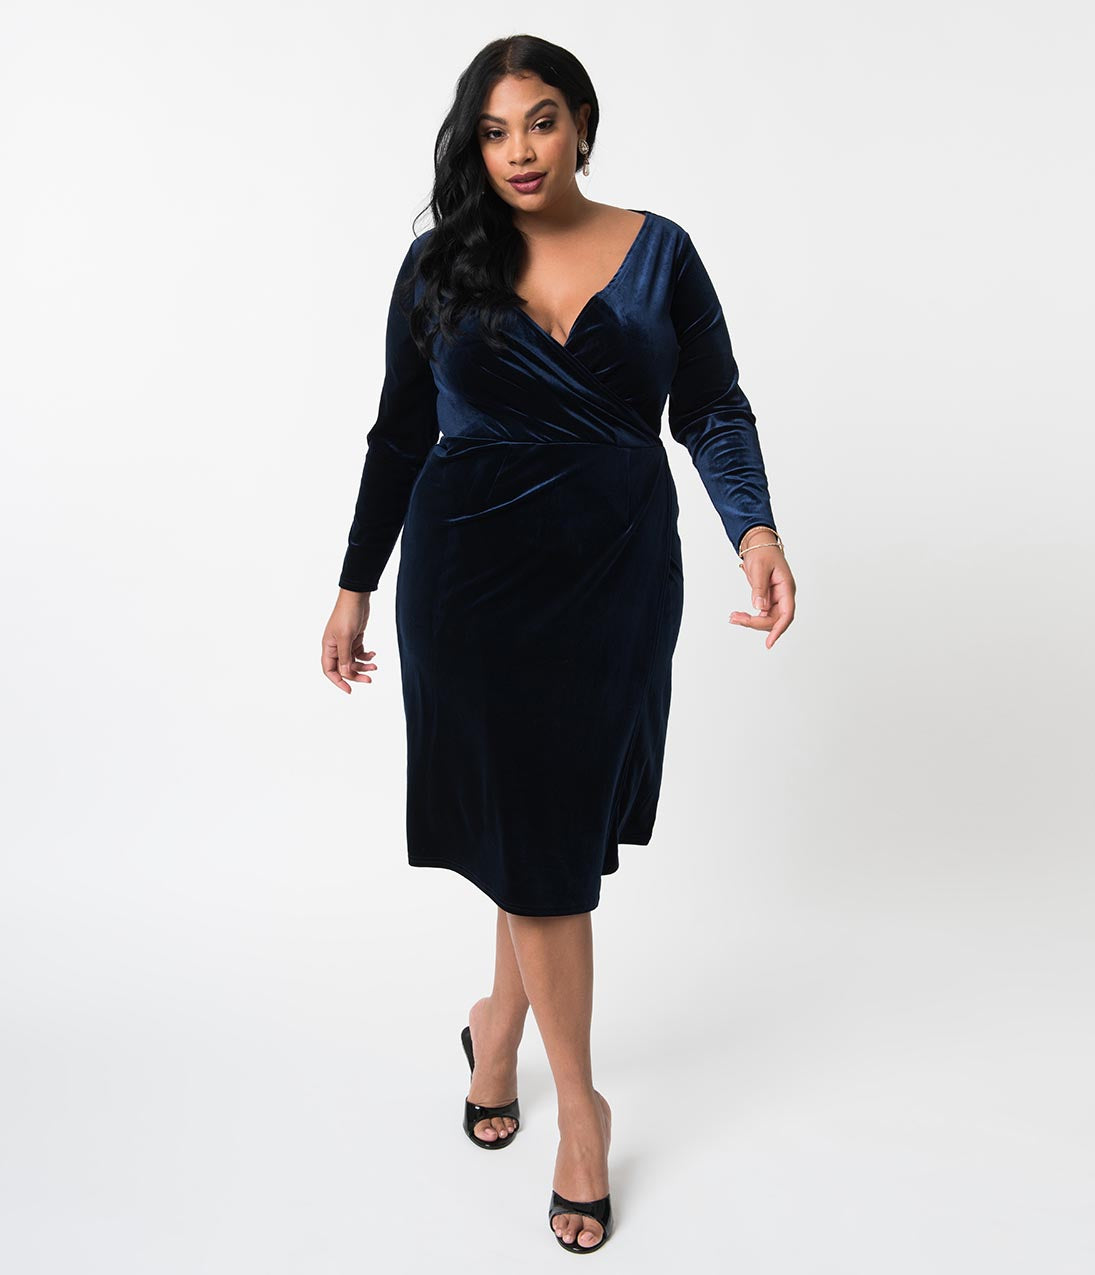 1940s Plus Size Fashion: Style Advice from 1940s to Today Unique Vintage Plus Size Navy Blue Velvet Long Sleeve Damsel Wiggle Dress $74.00 AT vintagedancer.com